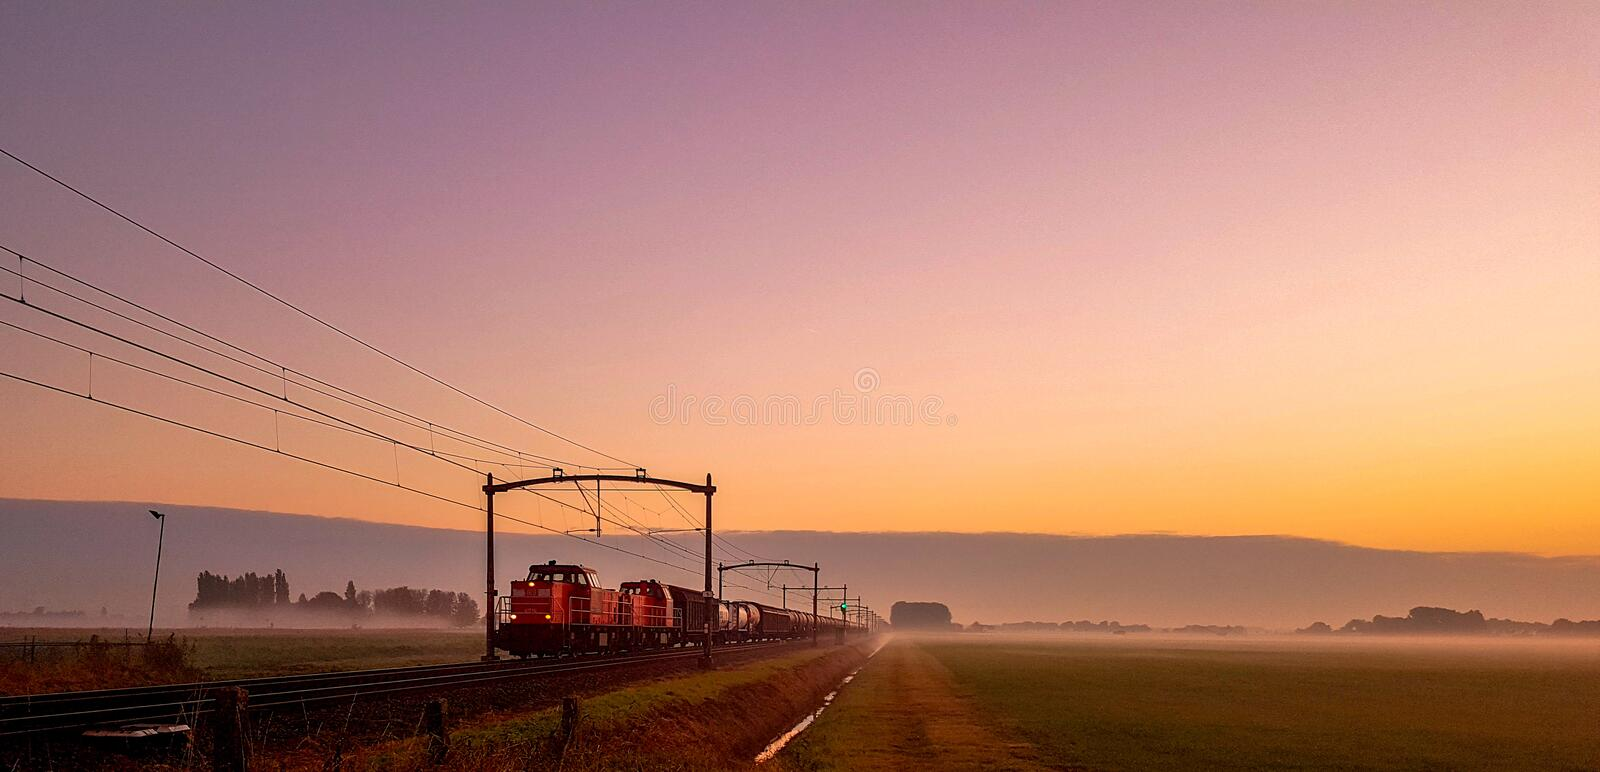 Train in the morning fog royalty free stock images